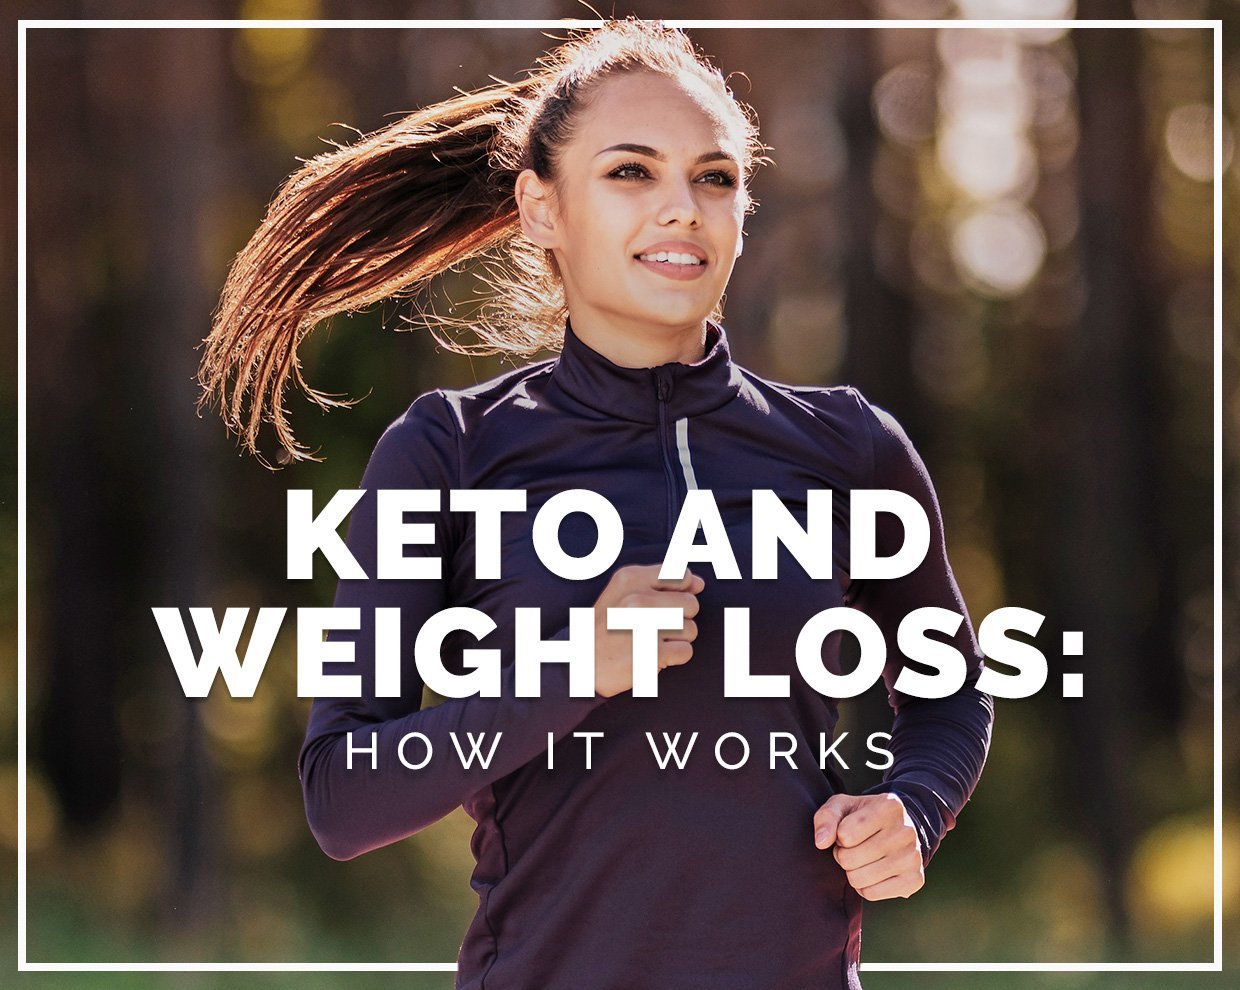 Keto and weight loss: How it works